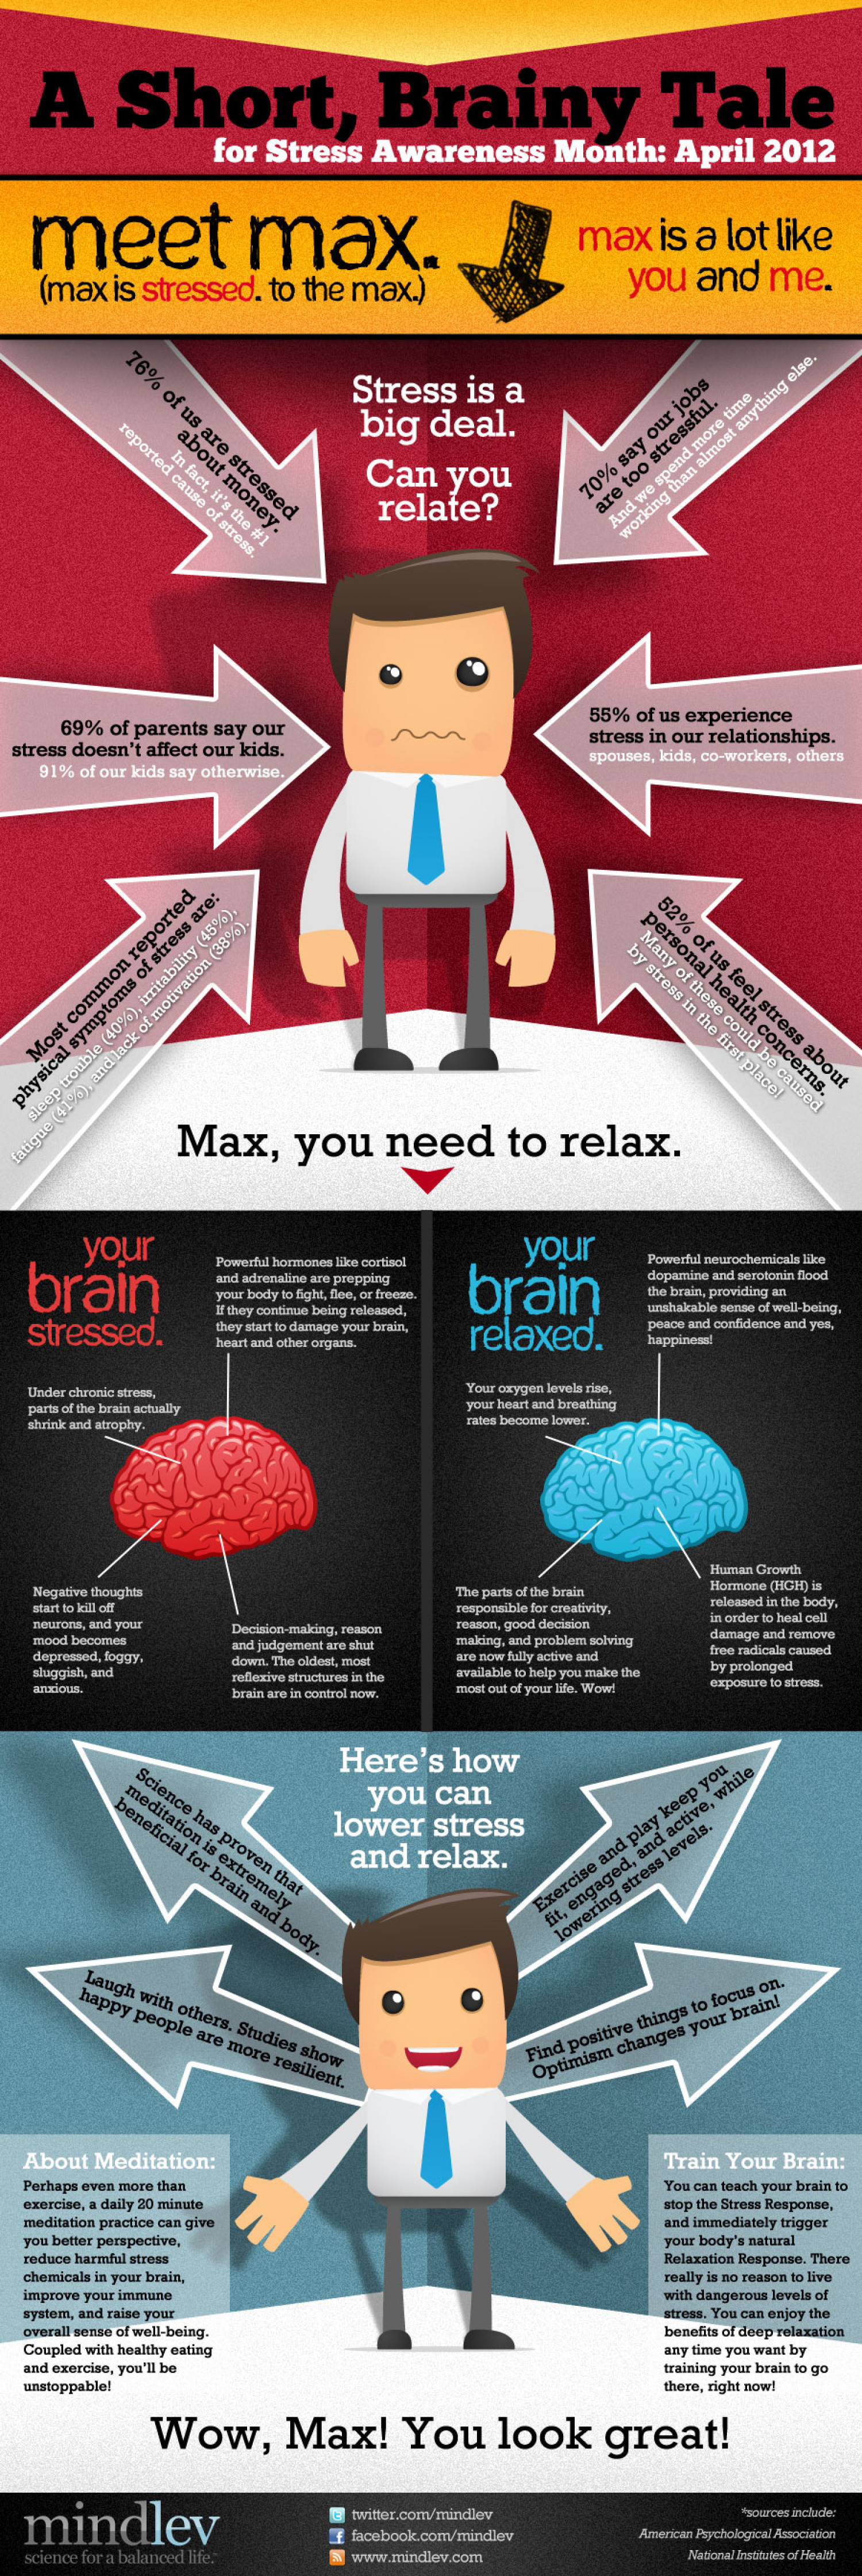 A Short, Brainy Tale for Stress Awareness Month, April 2012 Infographic